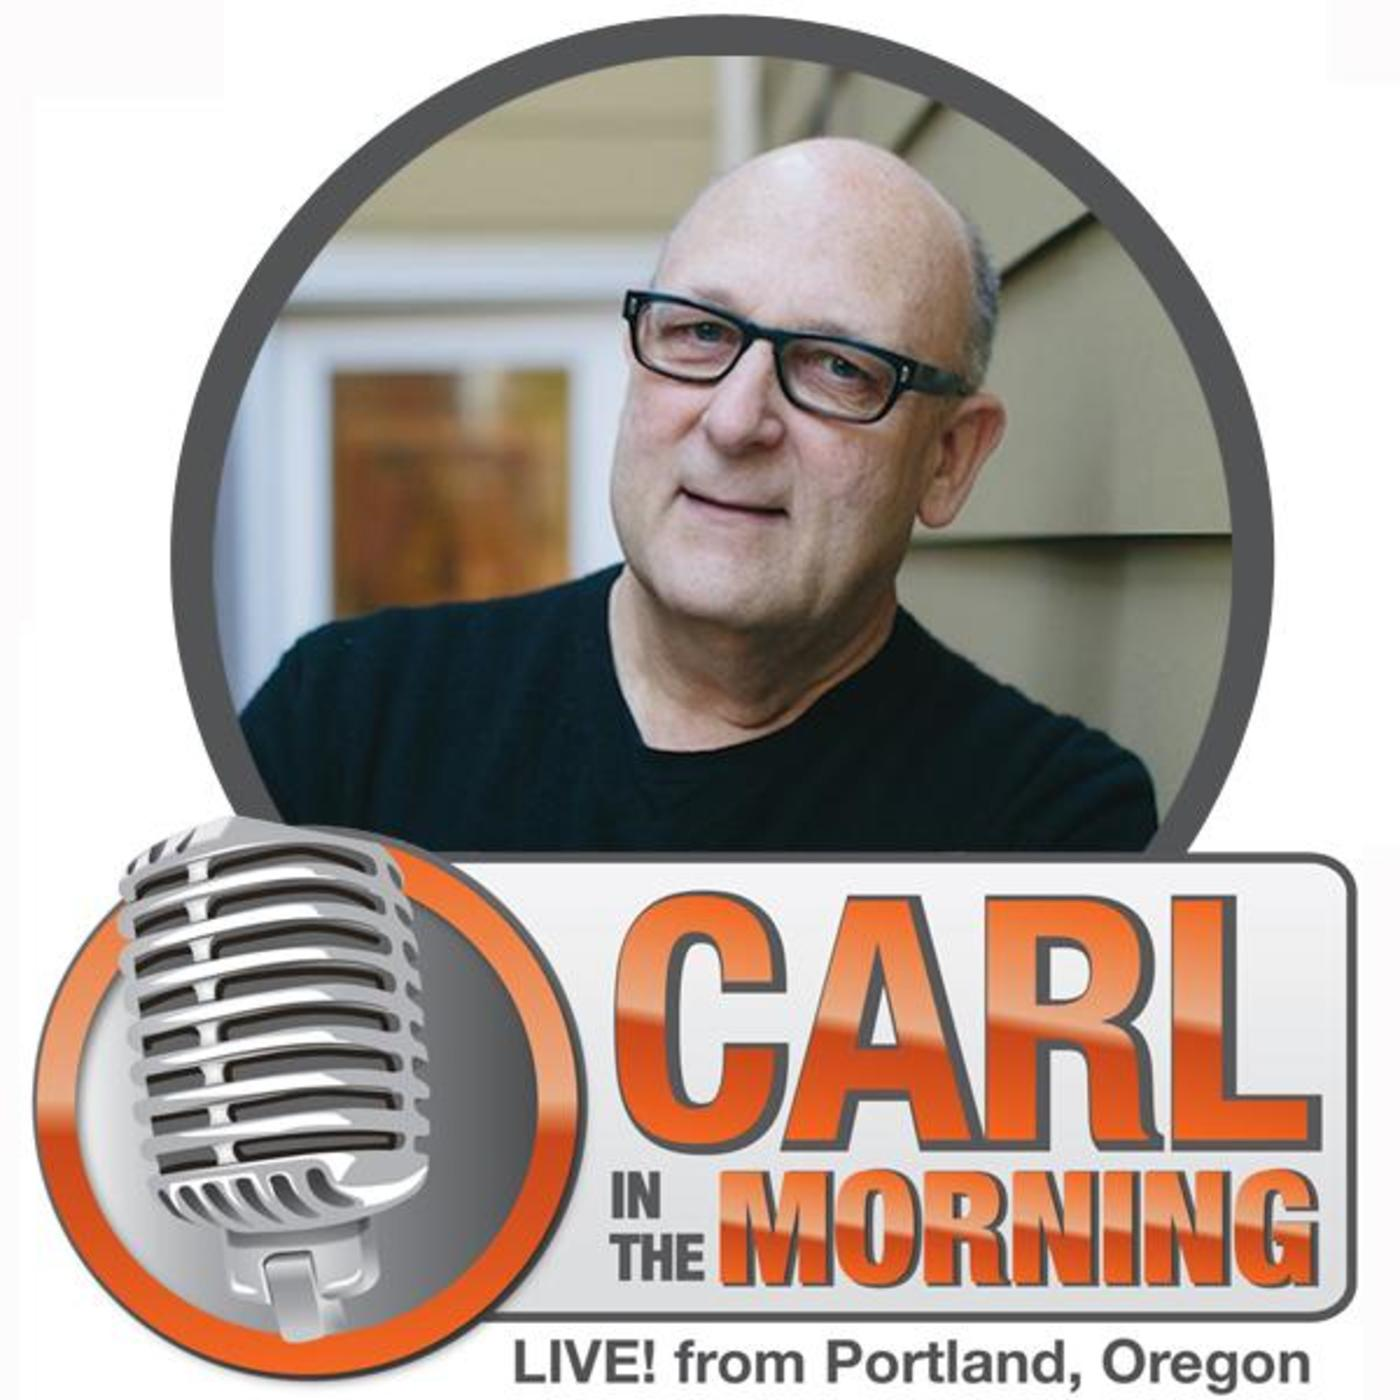 Carl in the Morning